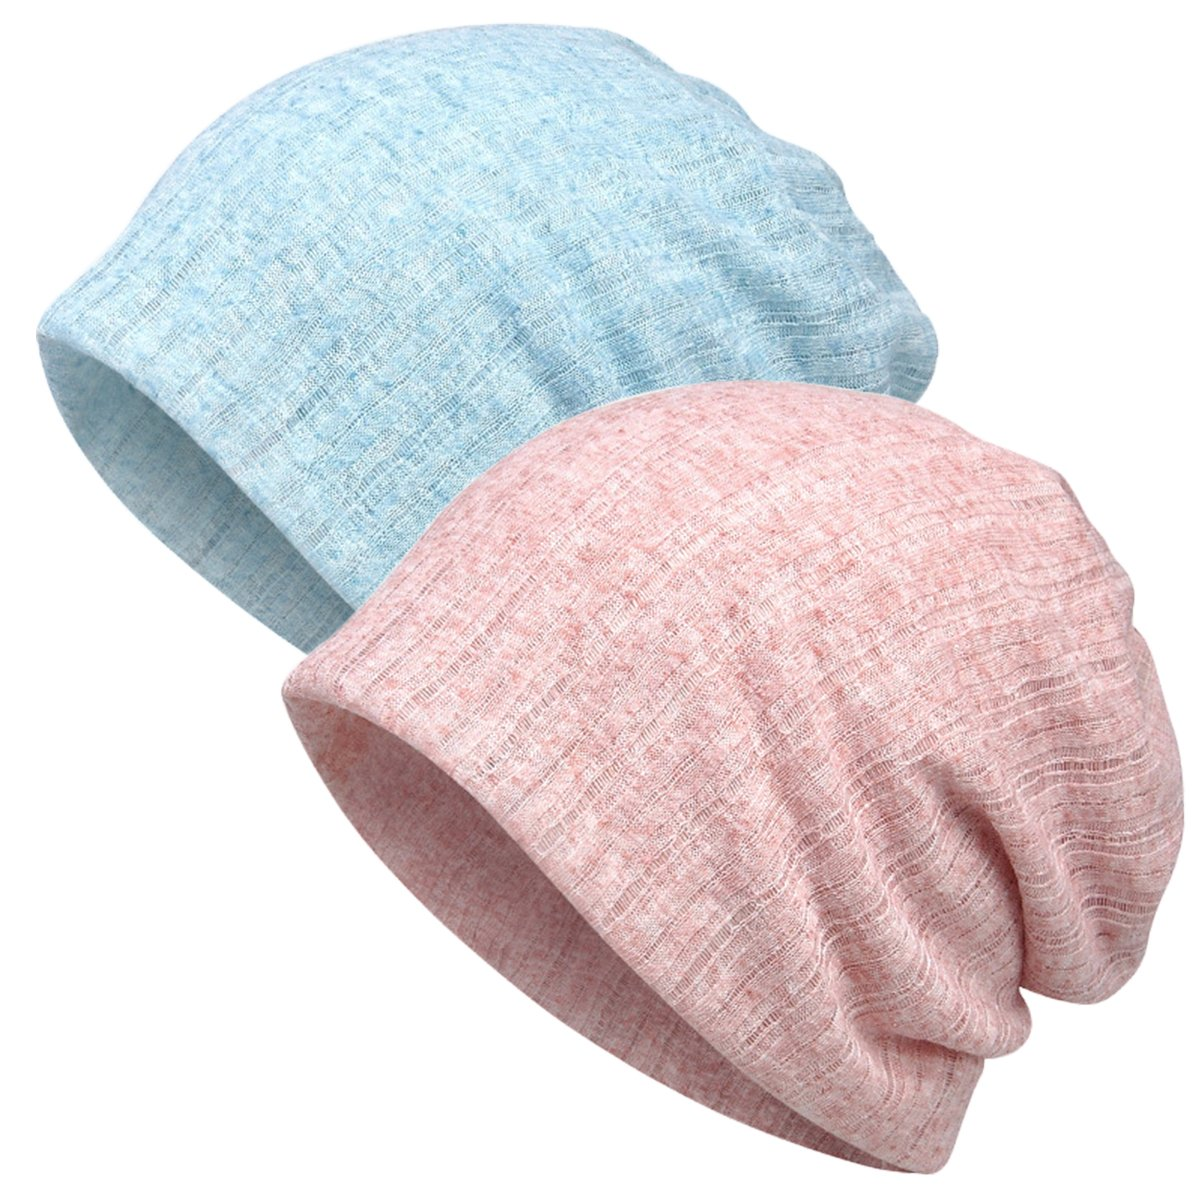 DancMolly Chmeo Baggy Slouchy Hats Loosely Skullies Beanie Lightweight Summer Caps for Cancer (Blue+Pink)